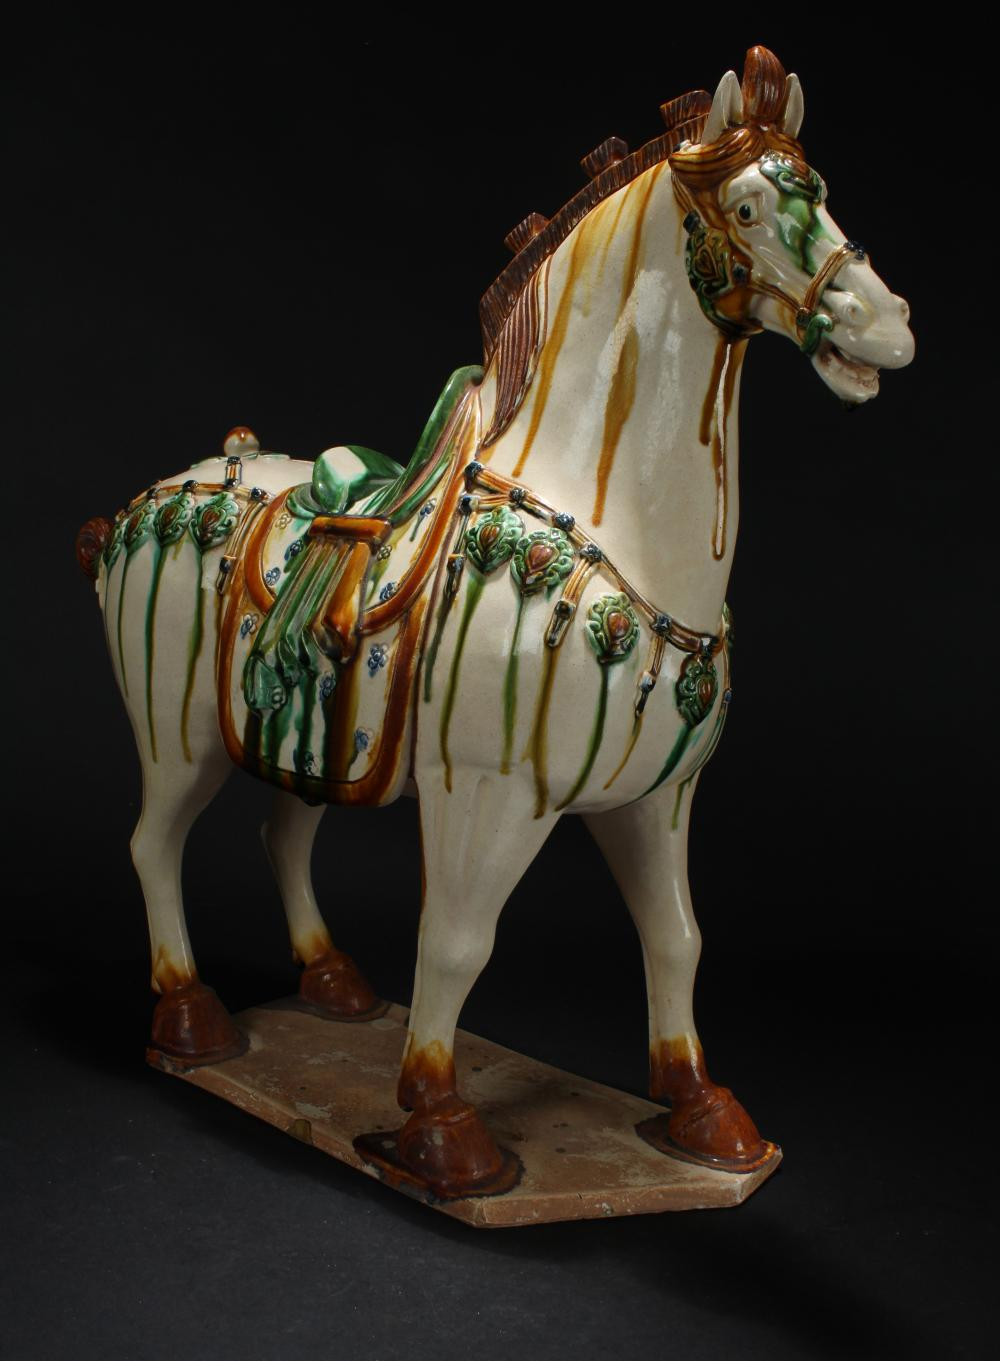 A Chinese Tri-podded Funeral-ritual Horse Portrait Statue